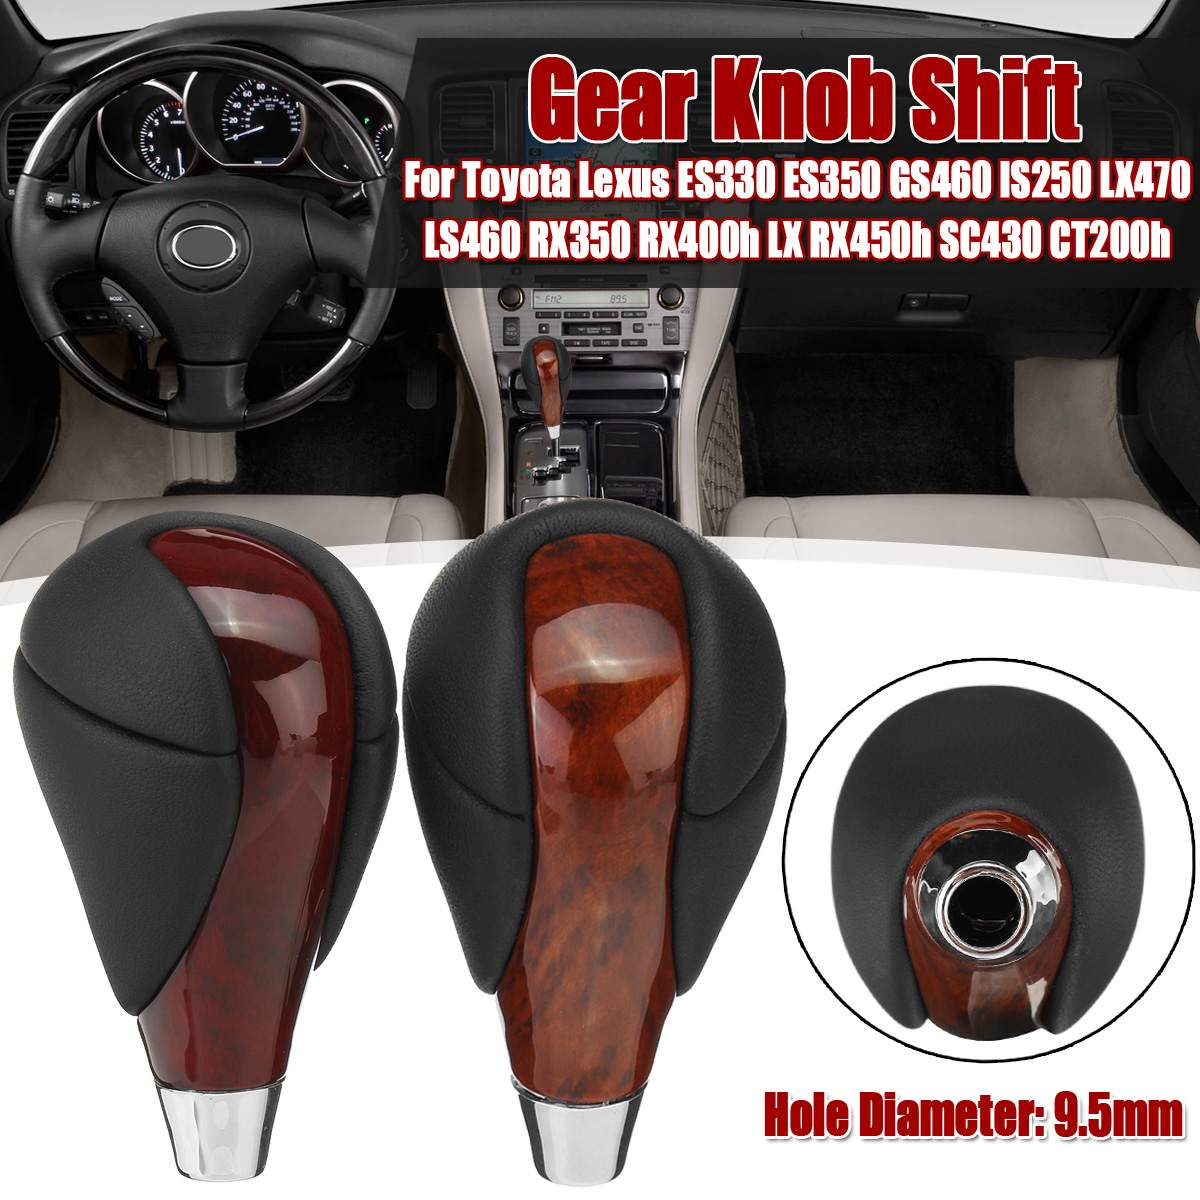 Real Leather Gear Knob Shift For Toyota for <font><b>Lexus</b></font> ES330 ES350 GS460 IS250 LX470 LS460 RX350 RX400h LX <font><b>RX450h</b></font> SC430 CT200h image